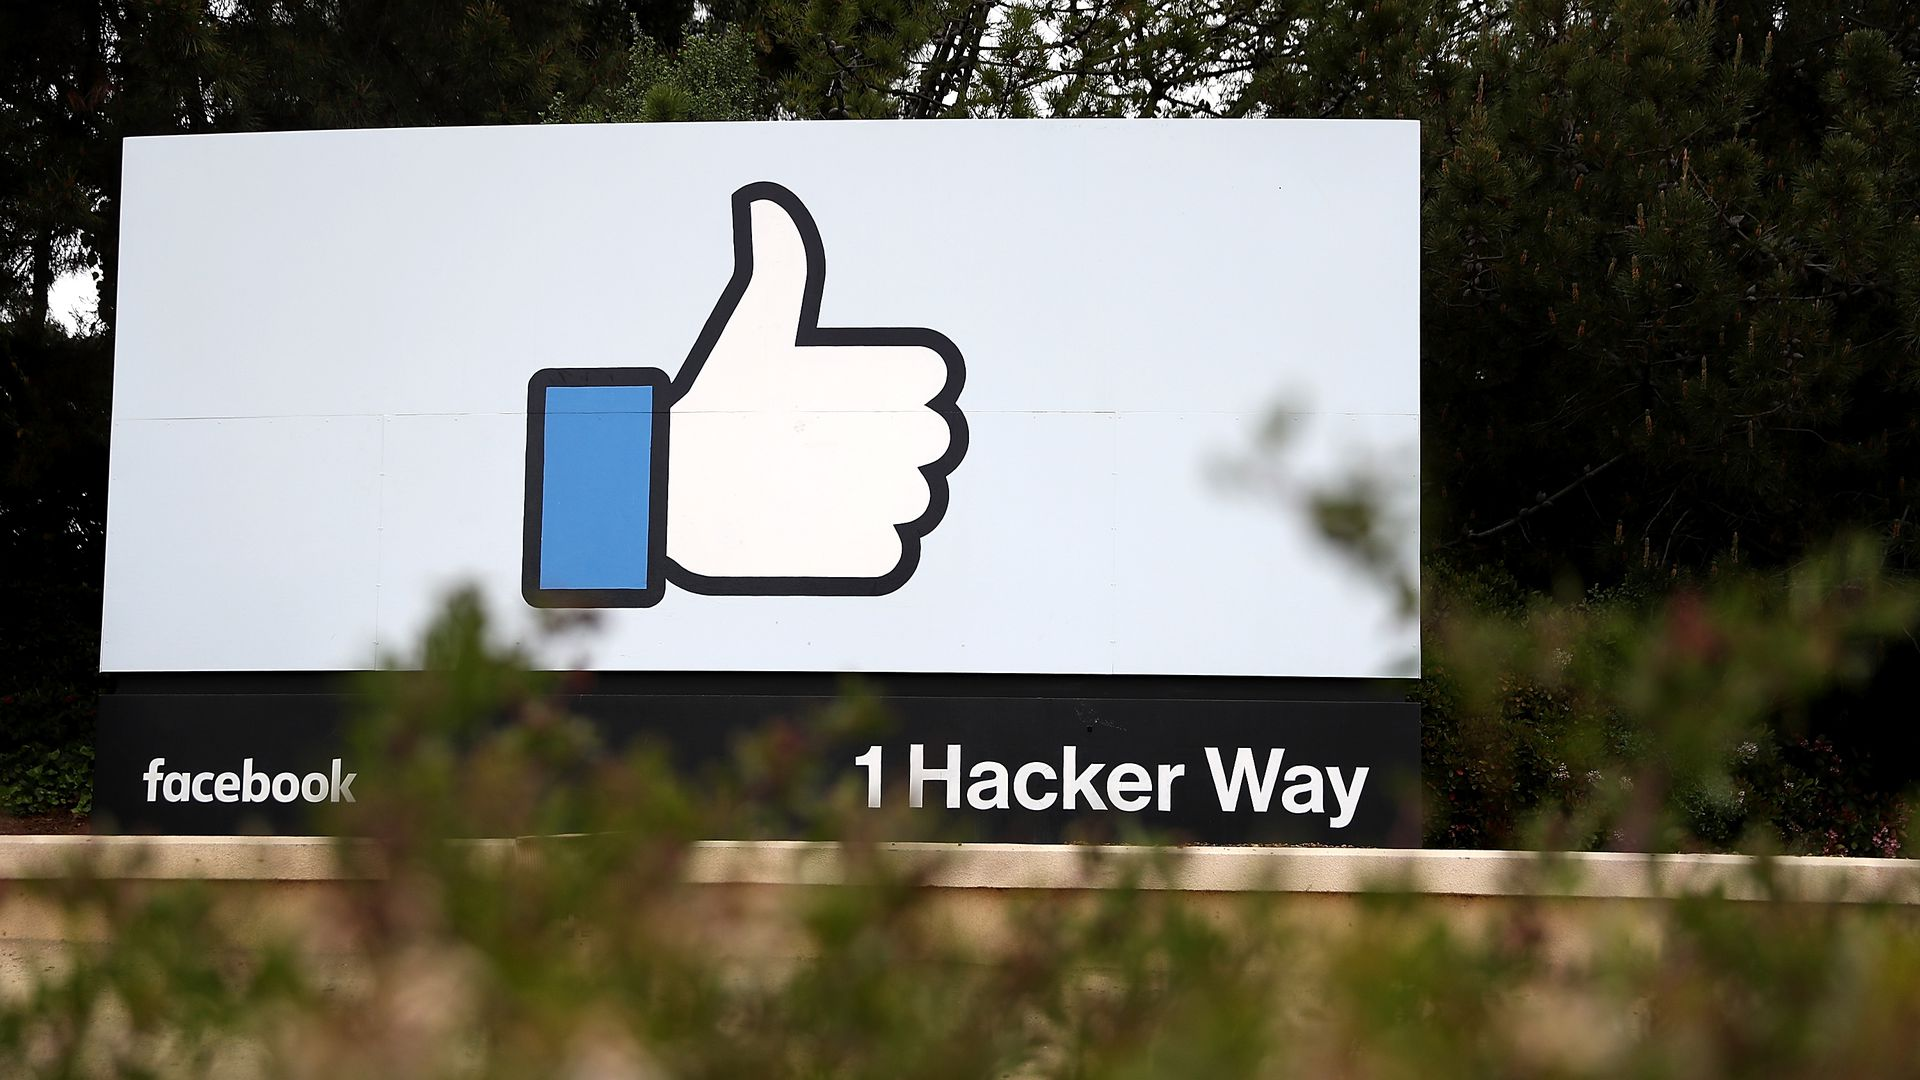 The thumbs up sign outside Facebook HQ